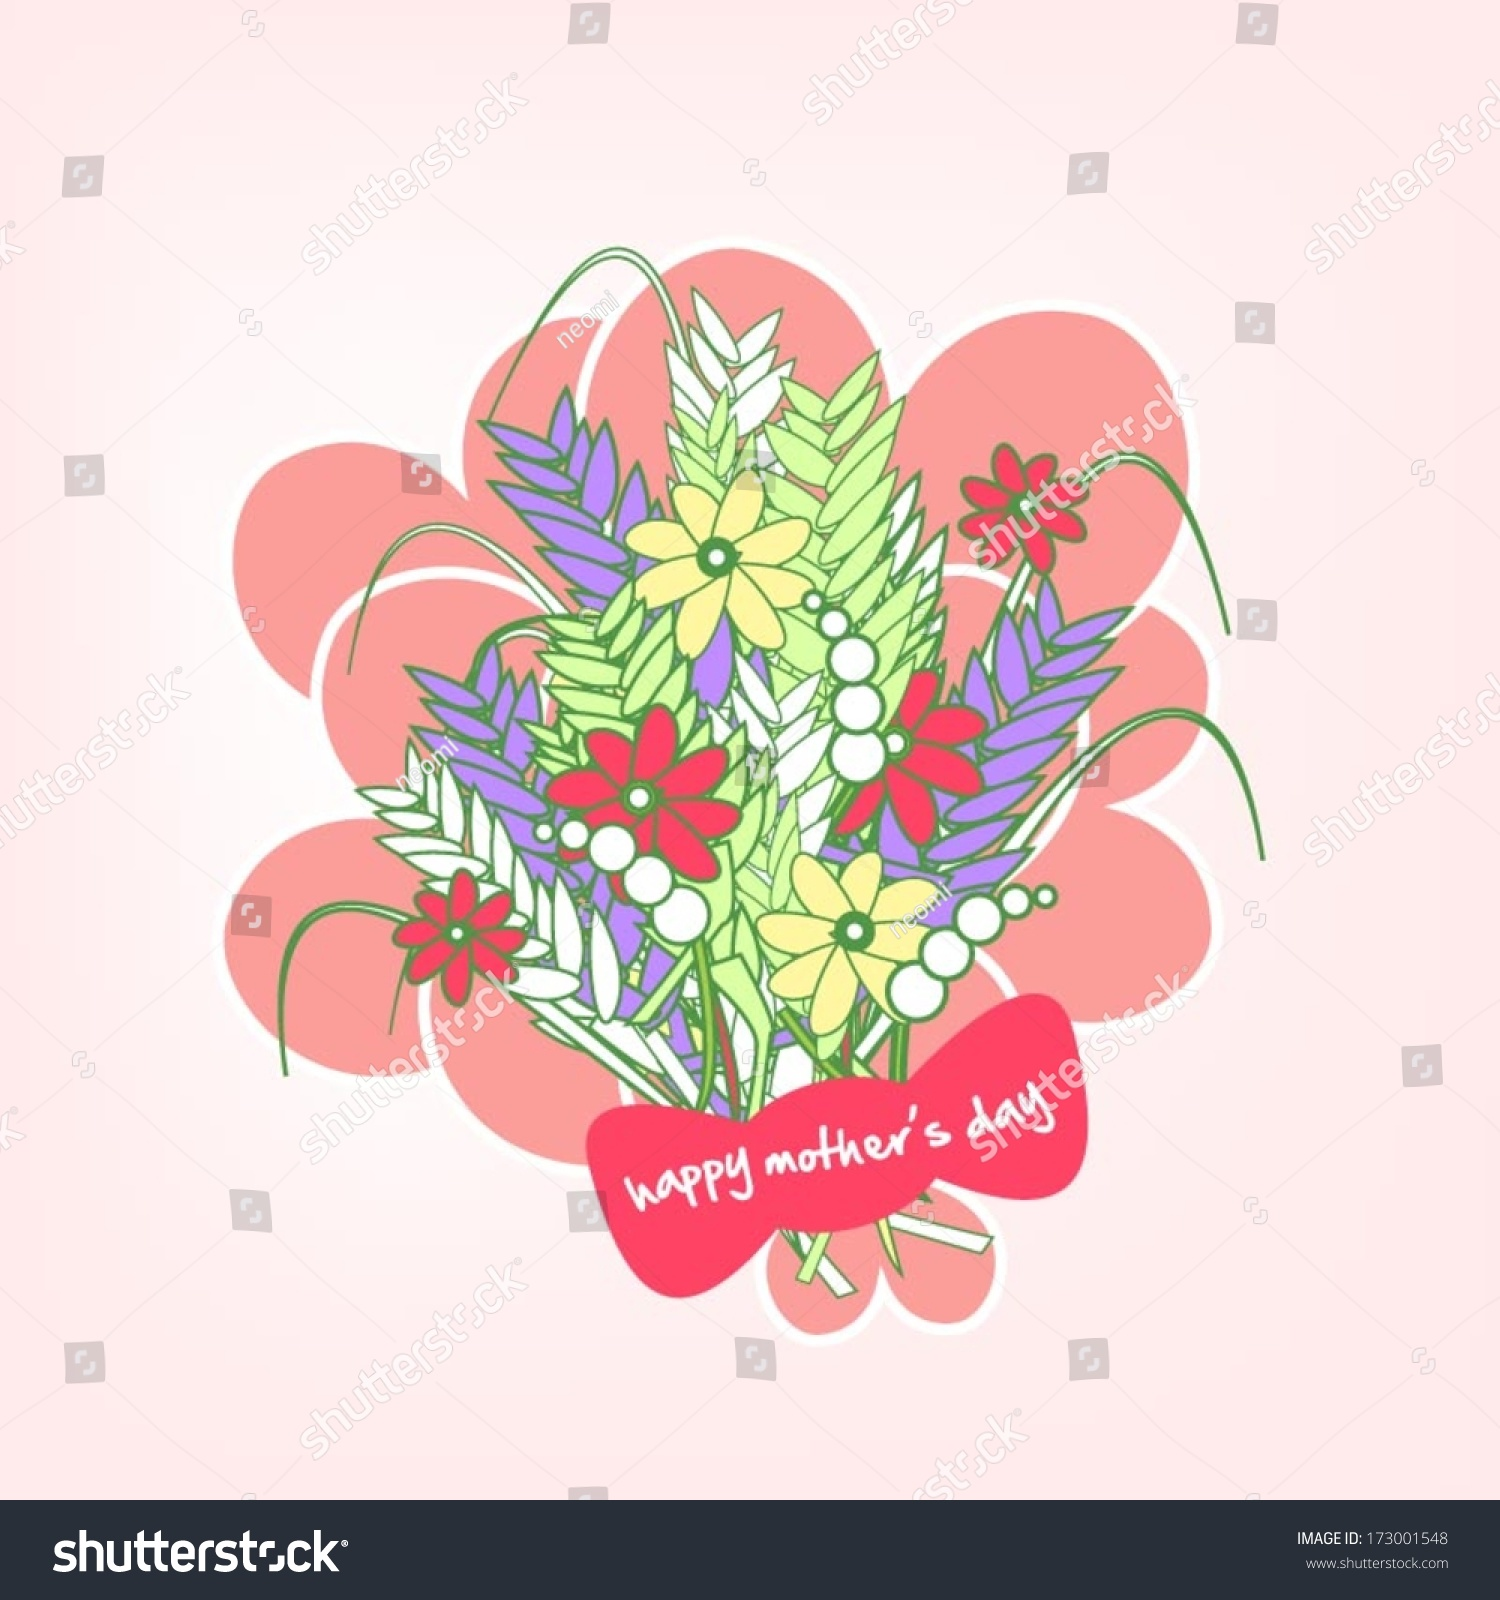 Bunch Flowers Greeting Mothers Day Happy Stock Vector 173001548